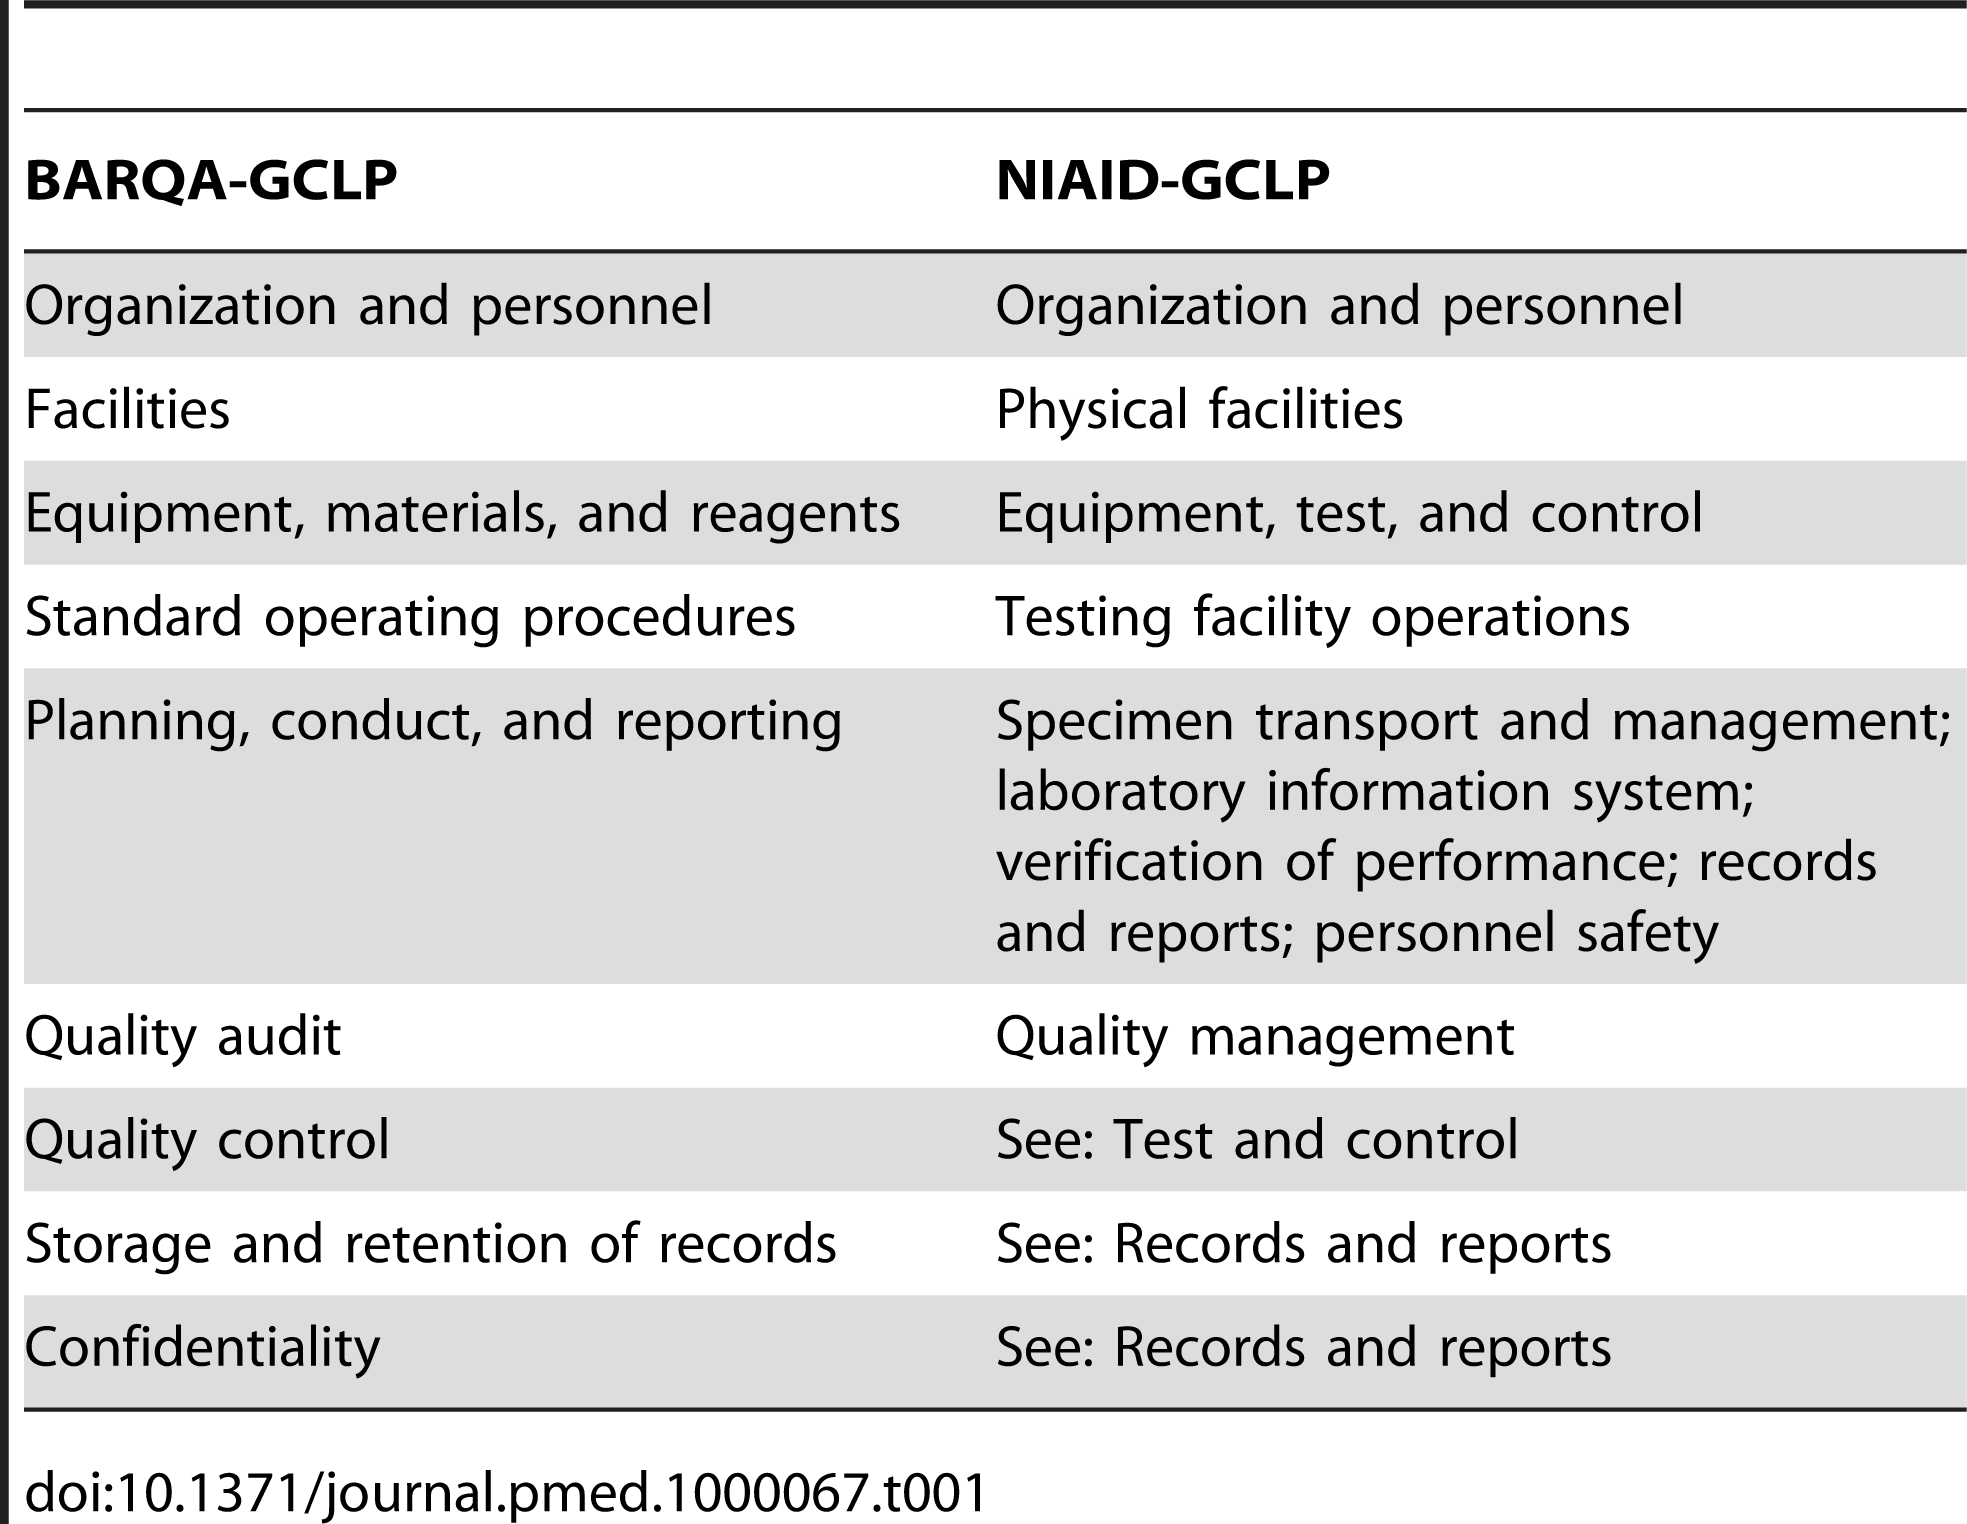 BARQA-GCLP and NIAID-GCLP core elements.